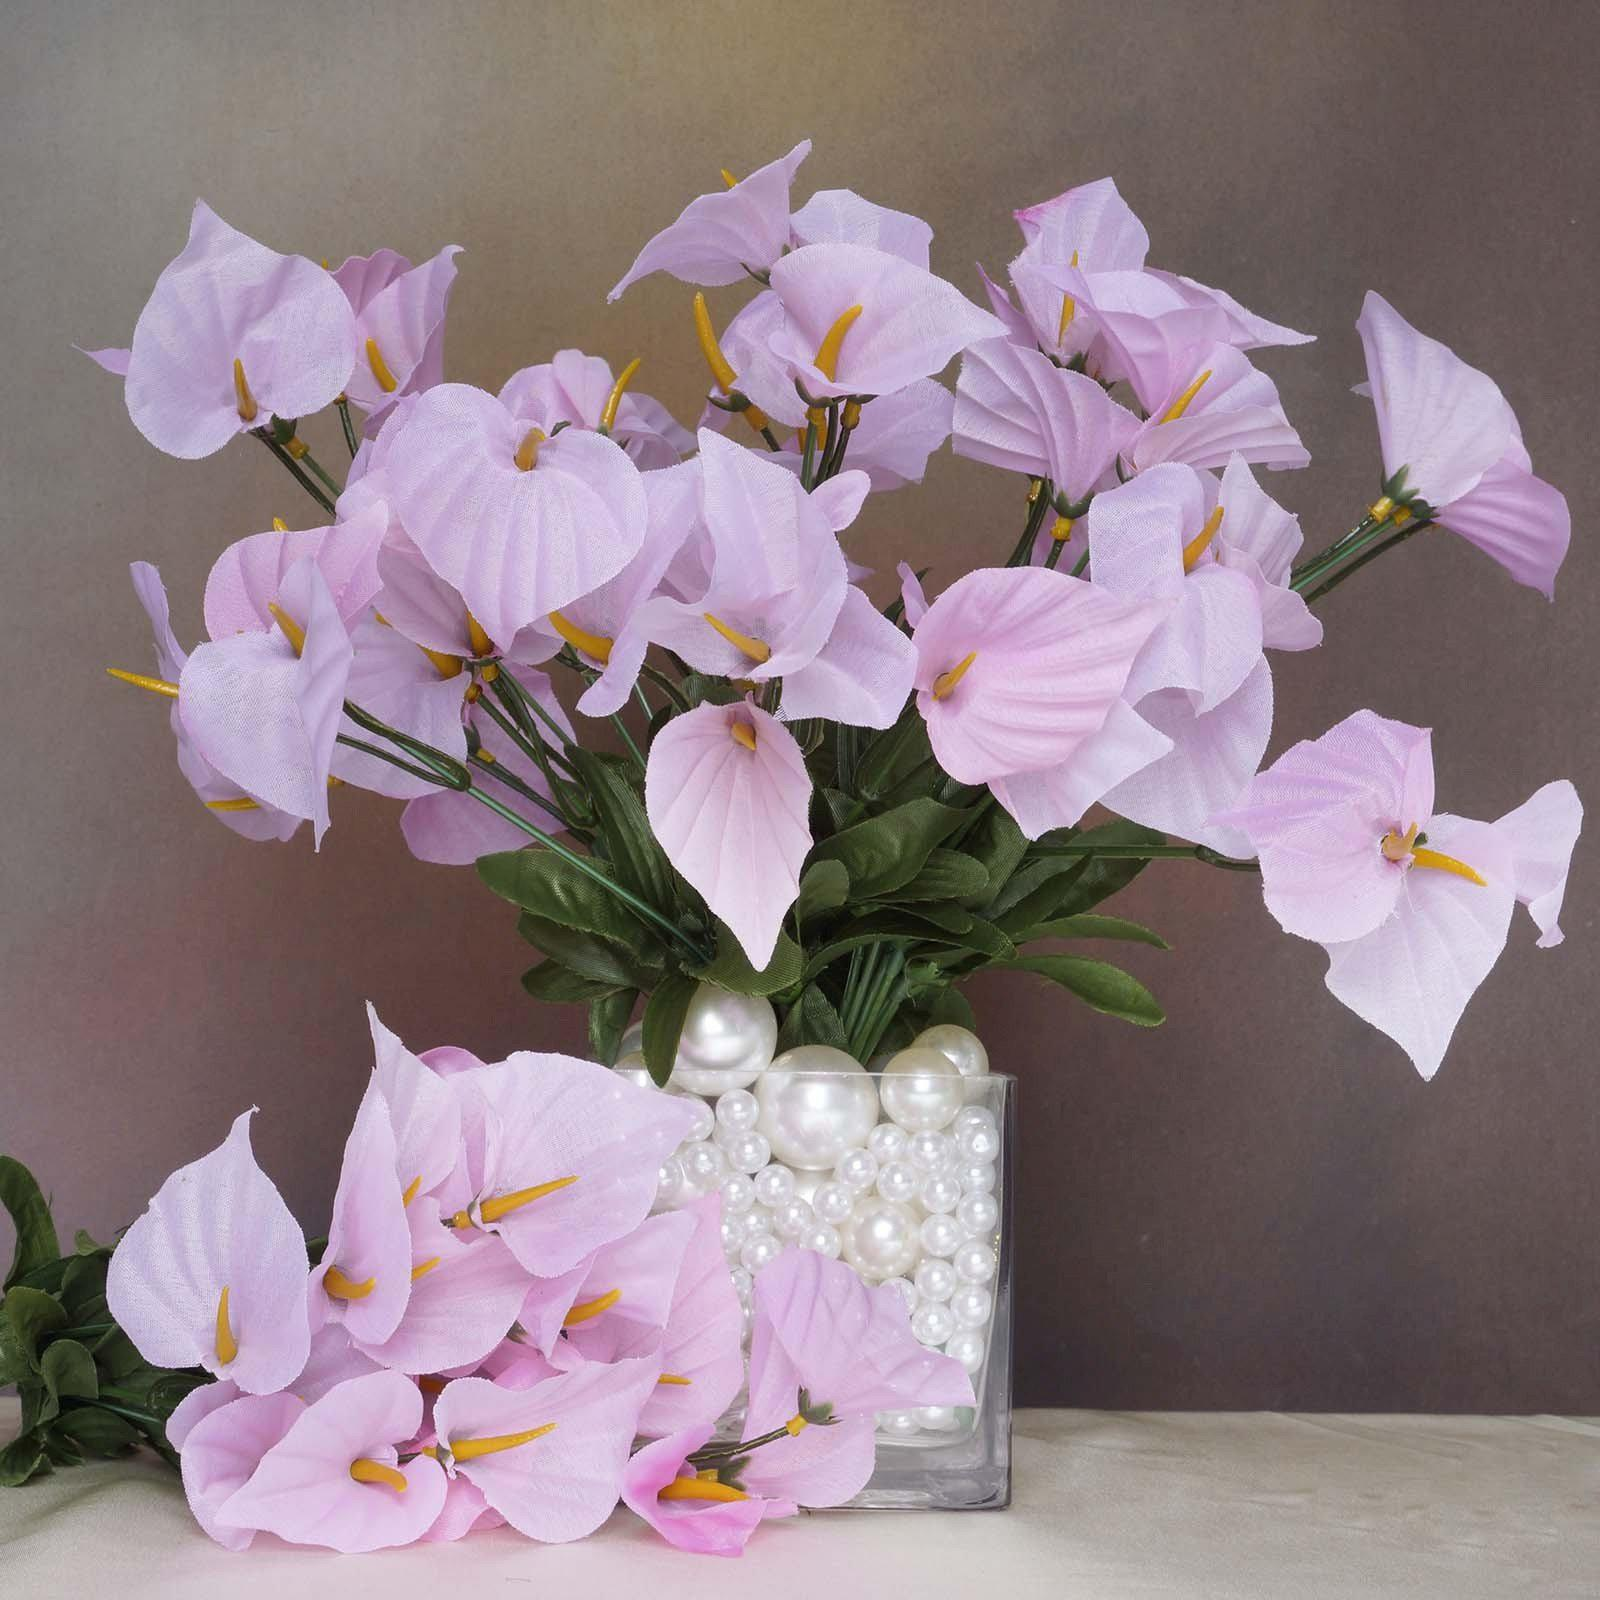 12 Bush 252 Pcs Pink Artificial Mini Calla Lilies Flower Wedding